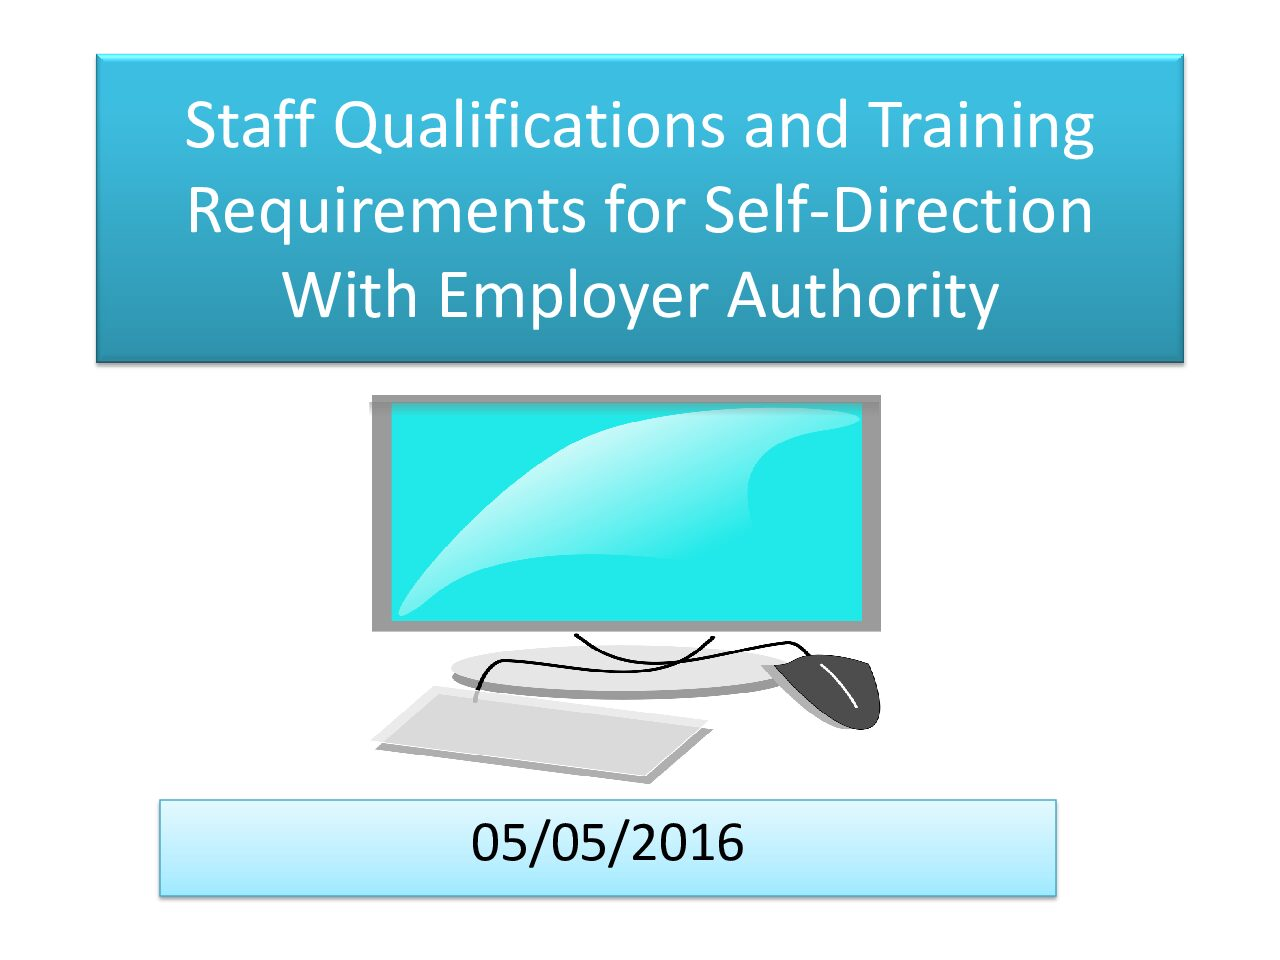 Staff Qualifications and Training Requirements for Self-Direction With Employer Authority